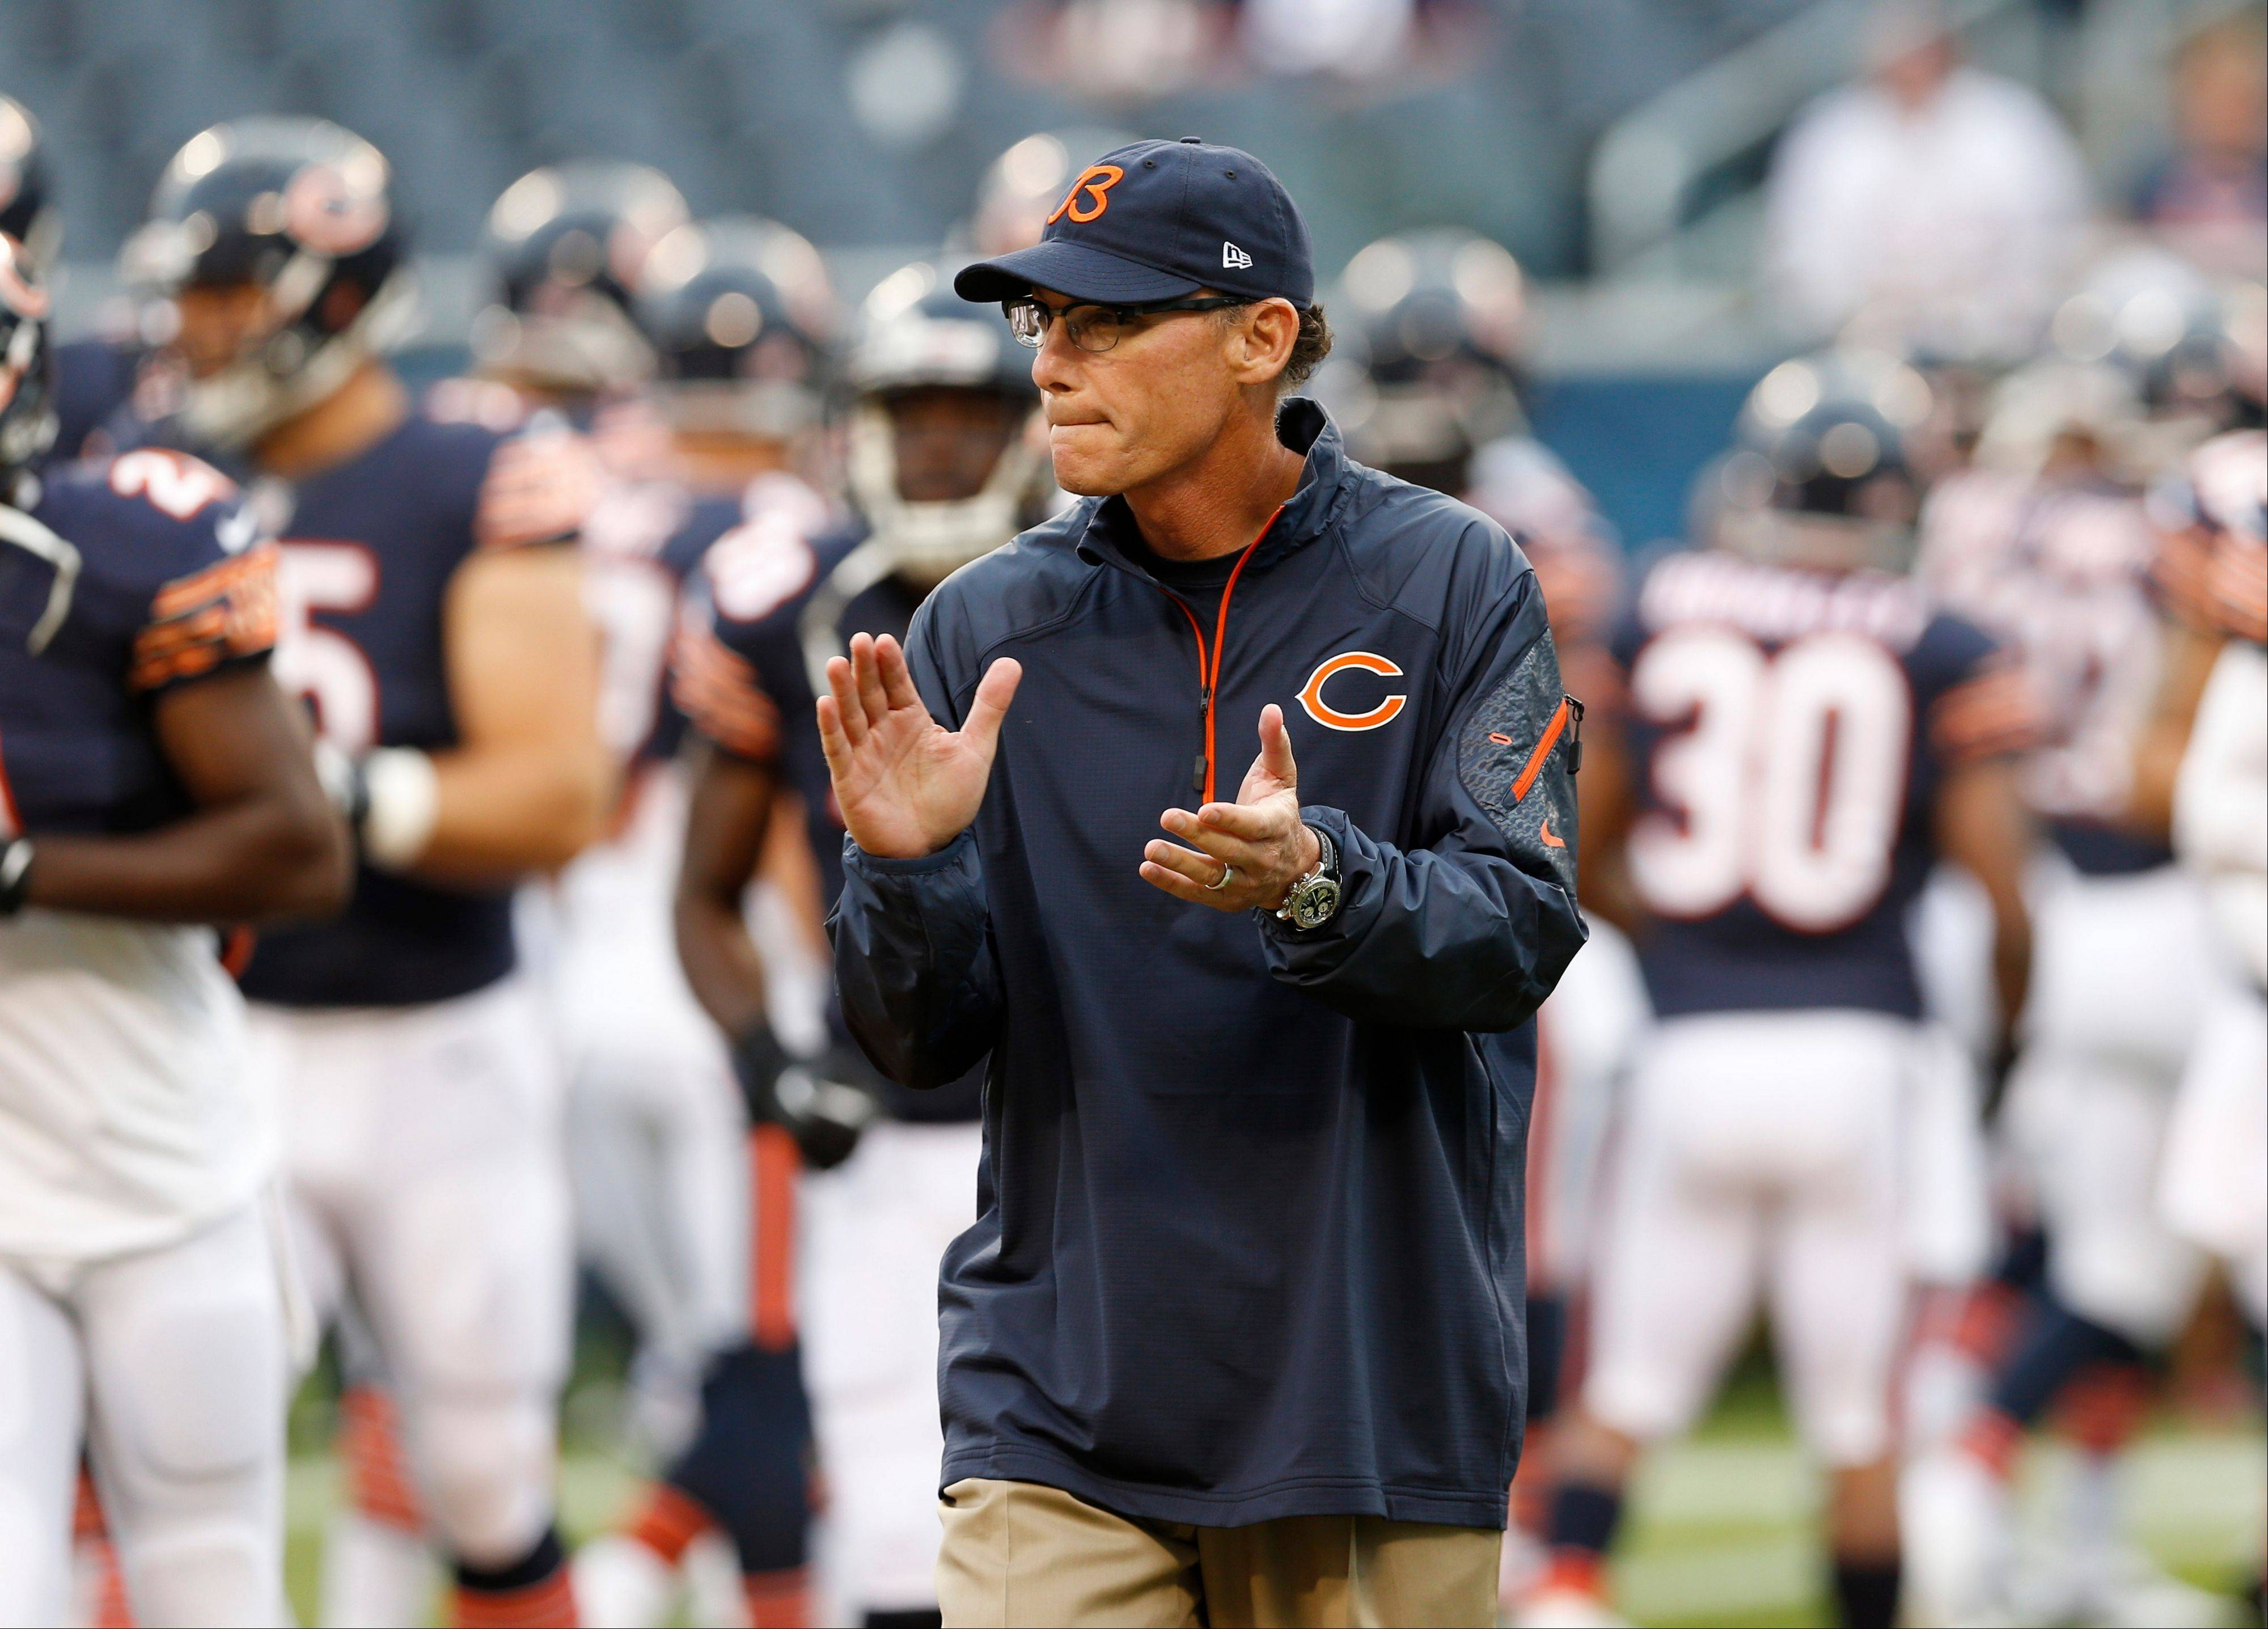 Bears head coach Marc Trestman knows that the team's depth at quarterback remains an issue that he hopes to have resolved soon.